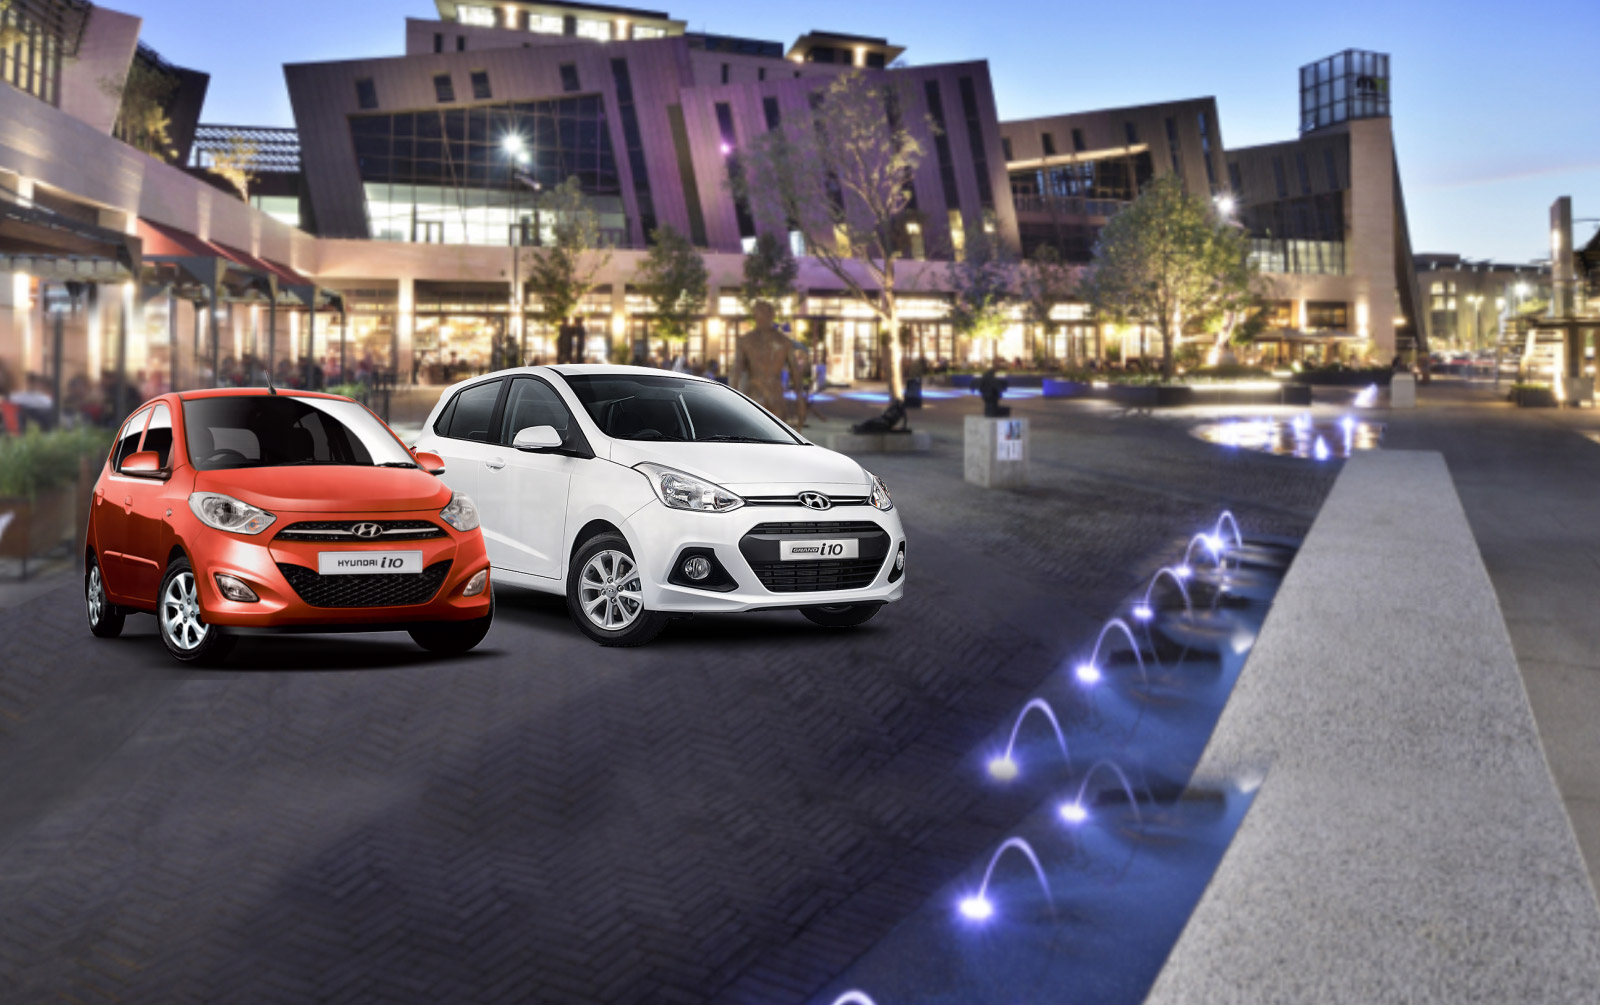 Hyundai i10 - Drive now, pay later